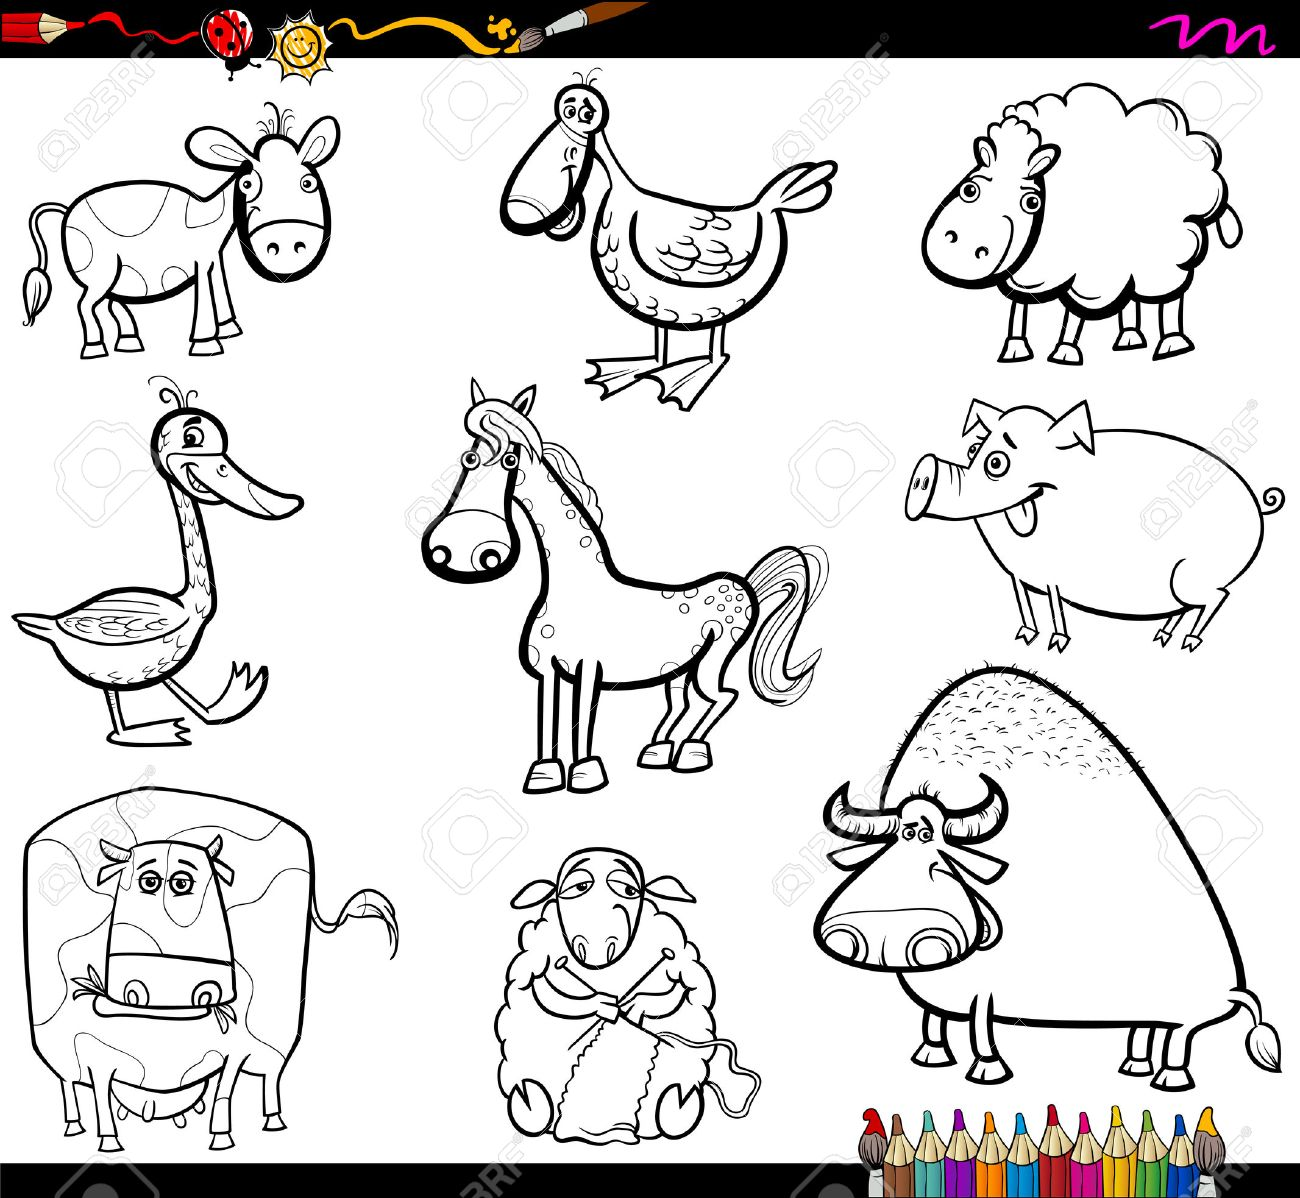 coloring book cartoon illustration of farm animals characters